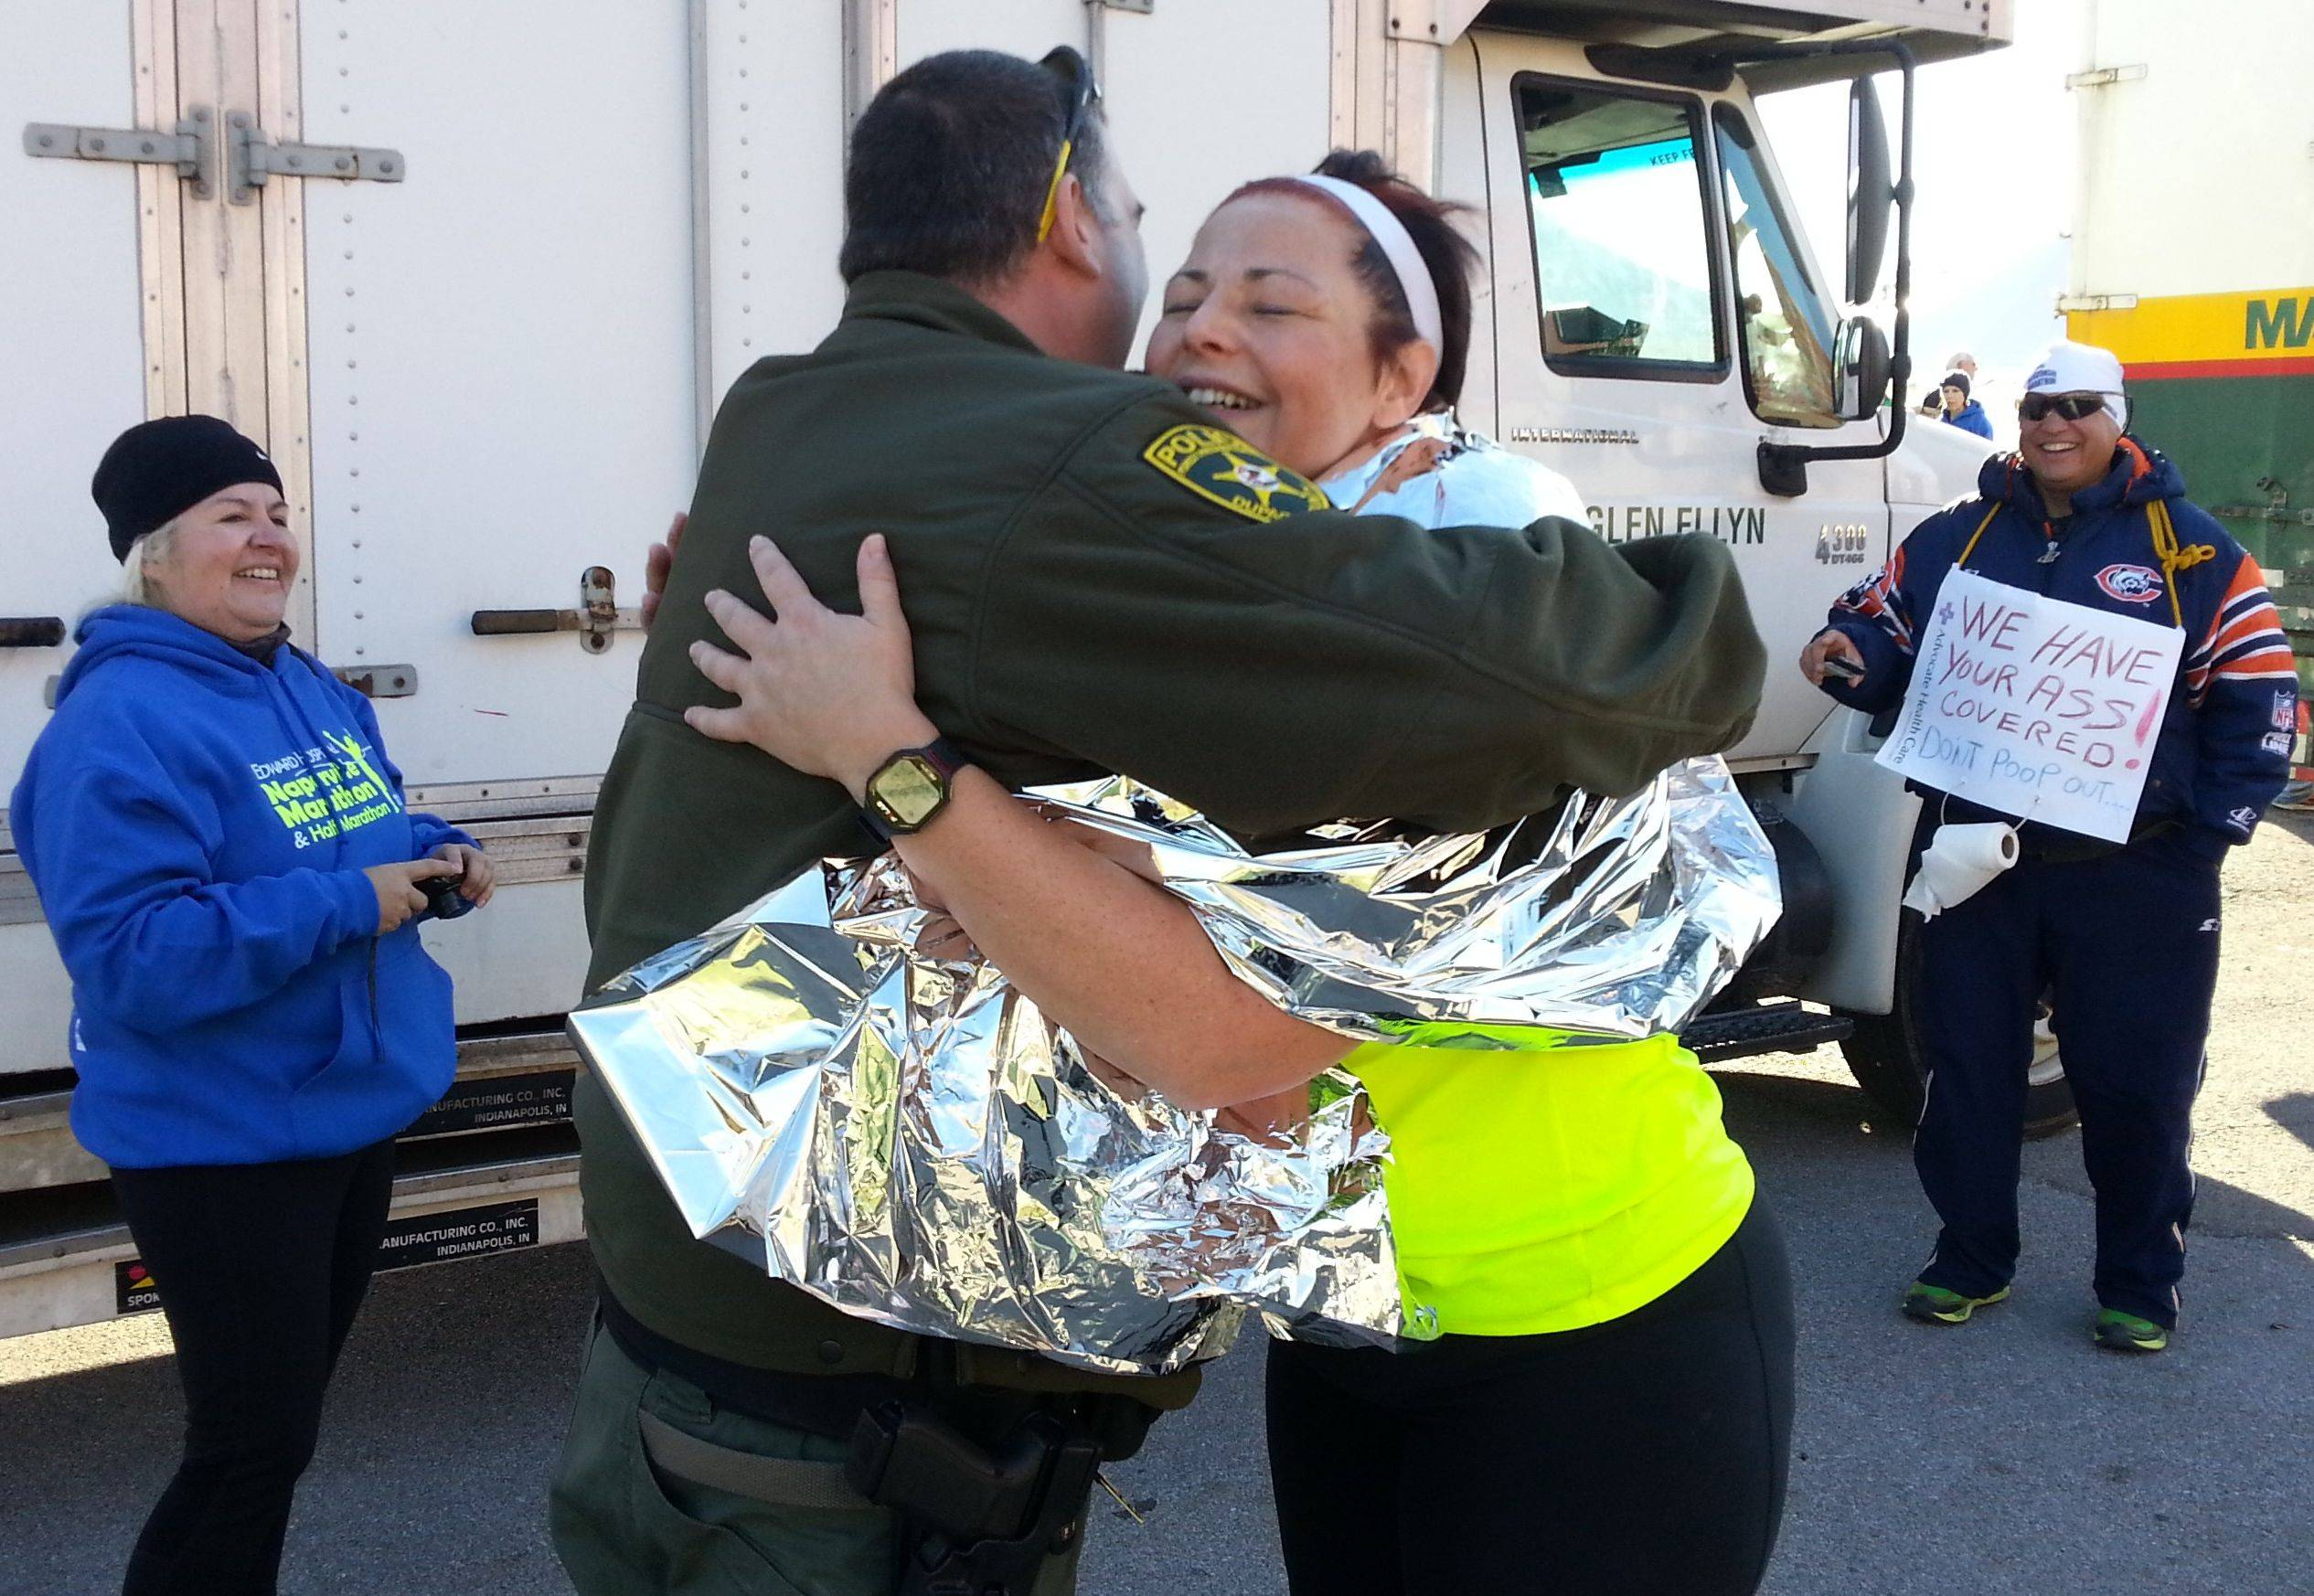 Forest cop gives lost runner spirited escort to Naperville Marathon finish